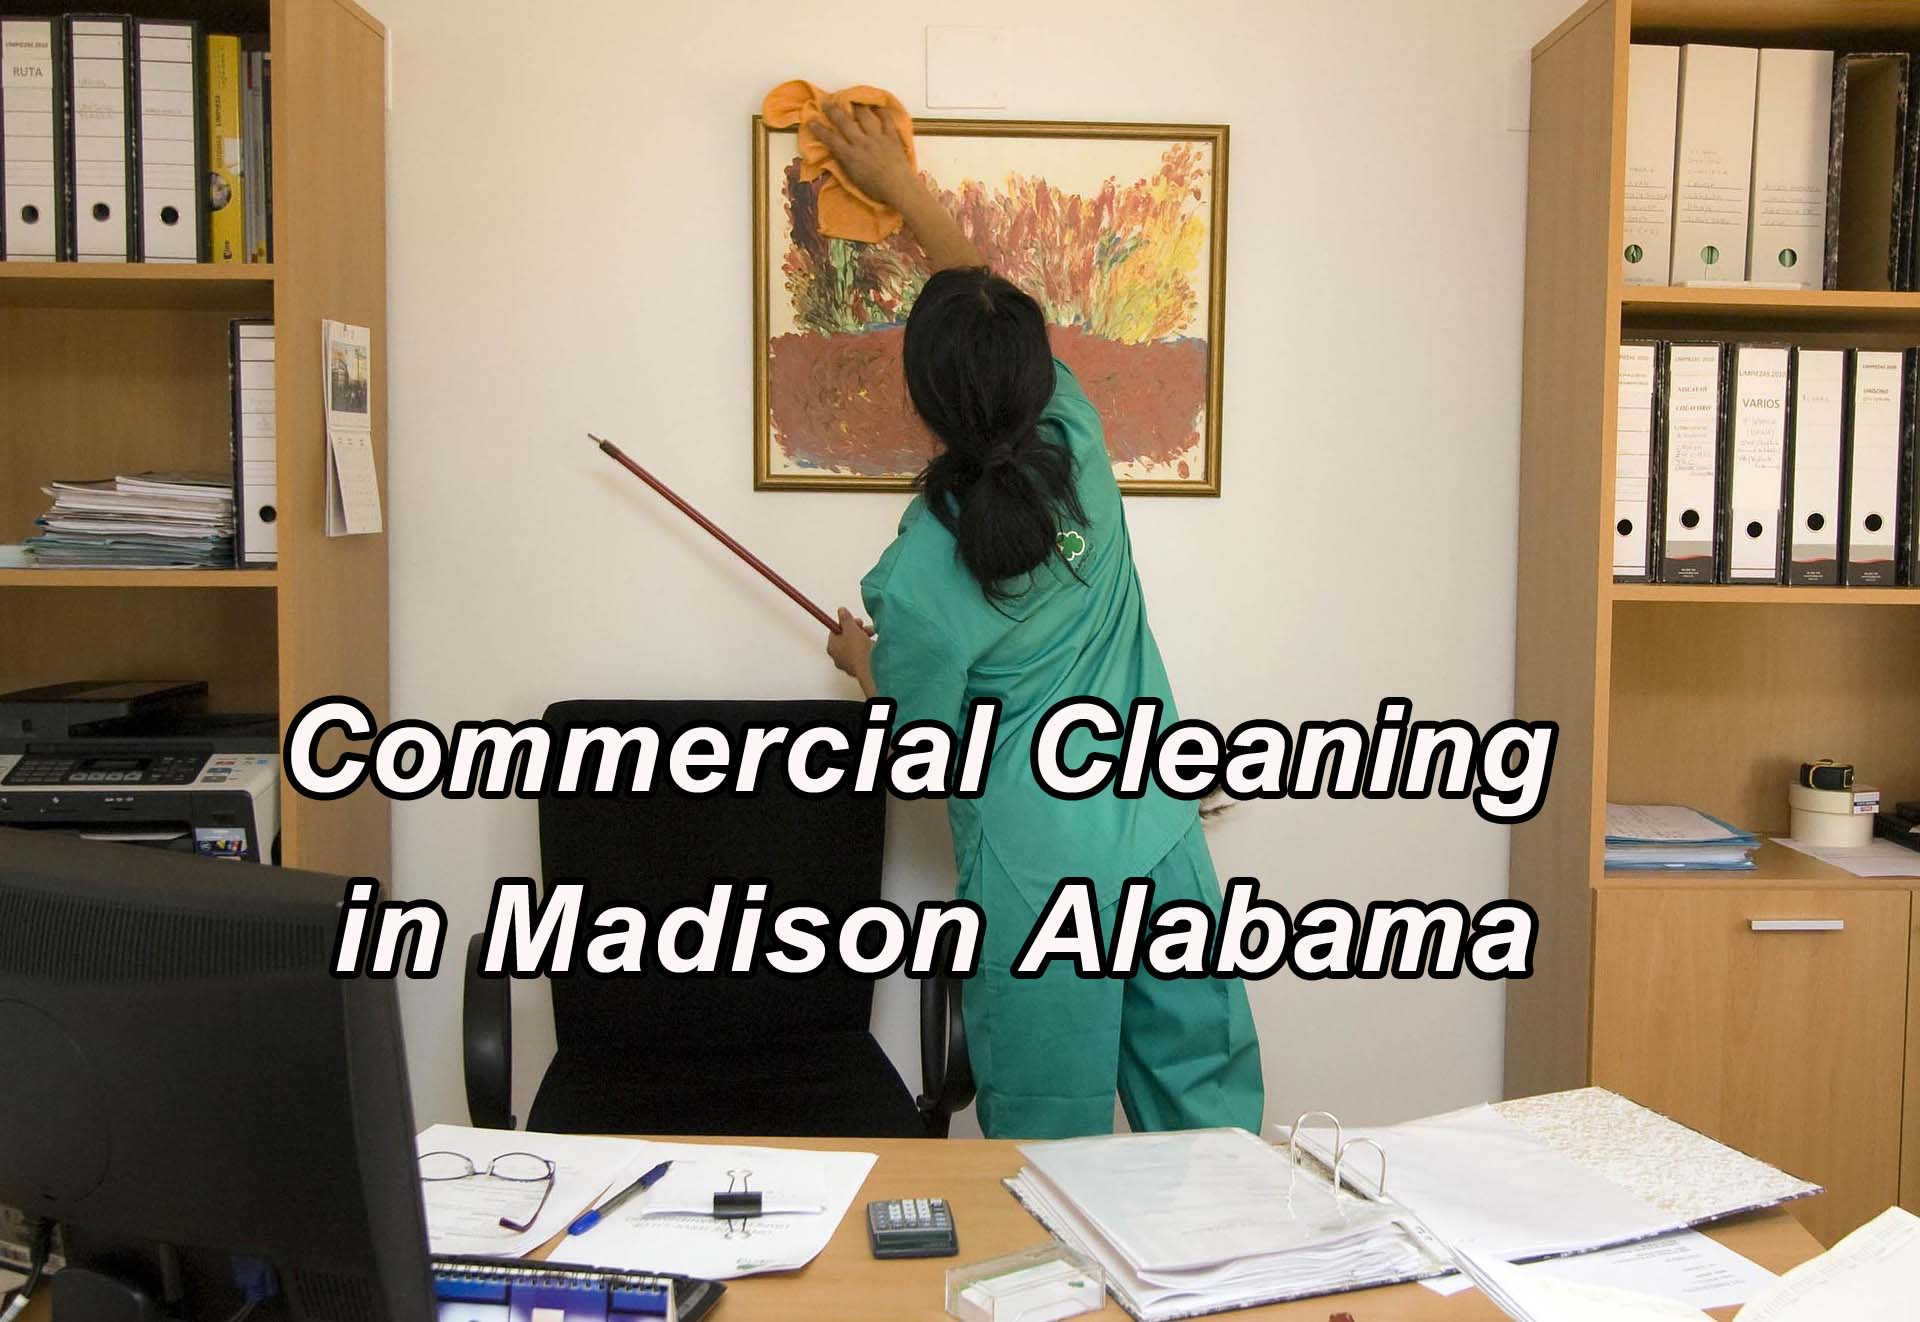 Commercial Cleaning in Madison Alabama